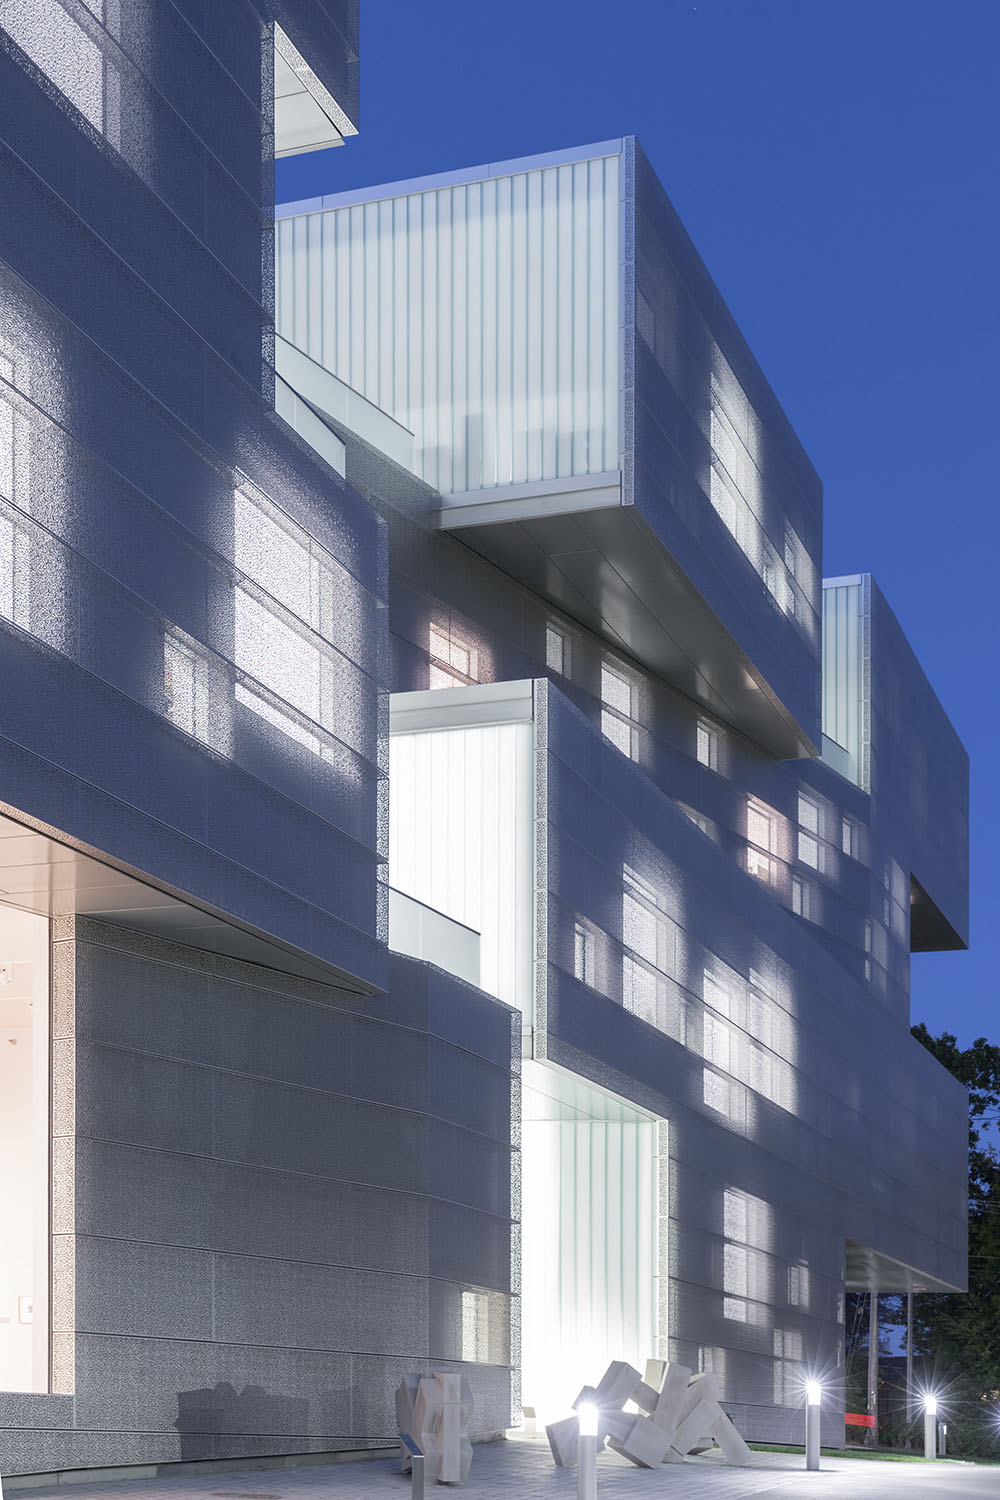 Exterior night view showing punched stainless steel perforated panels emitting soft diffused light.